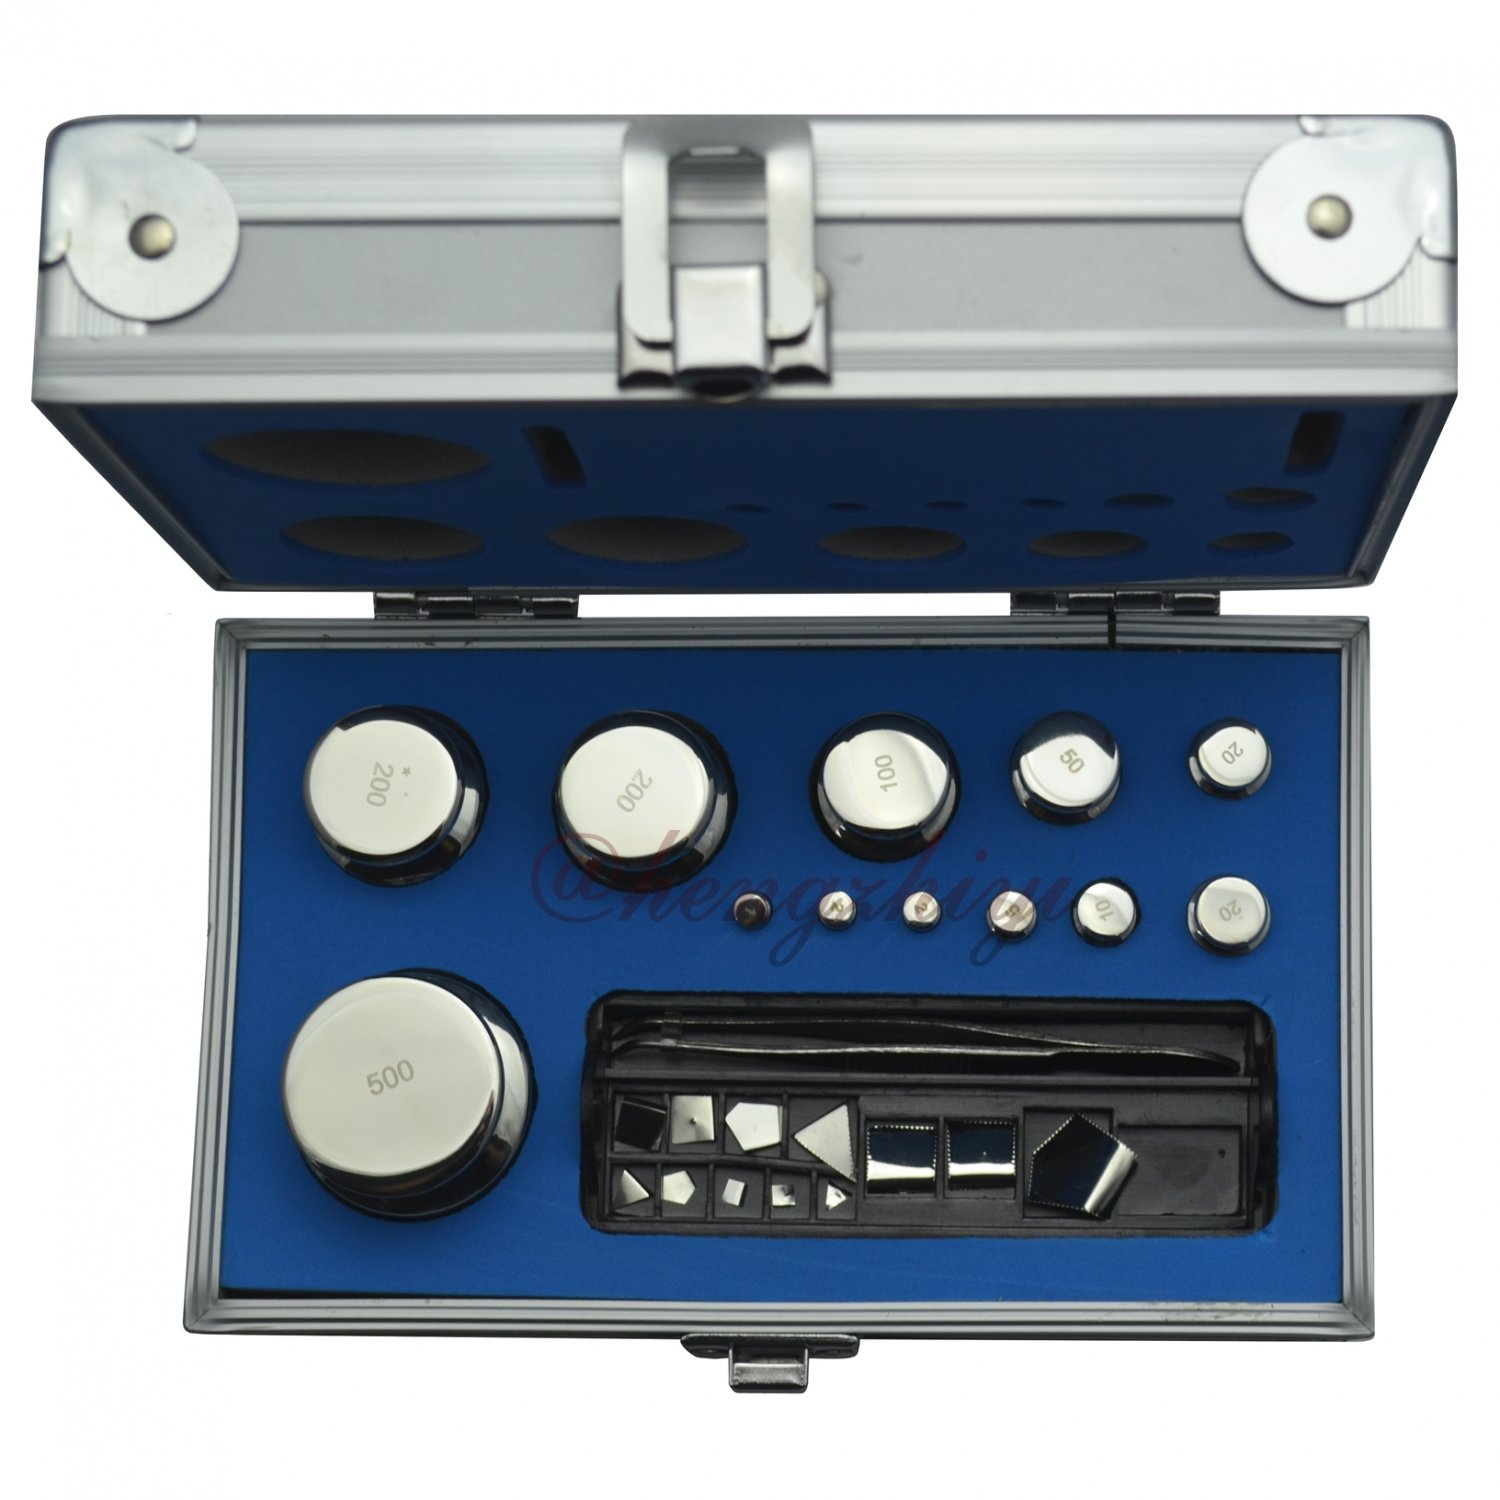 M1 Grade 1mg-500g Stainless Steel Scale Calibration Weight Kit Set, 24PCS Inside, Free Shipping